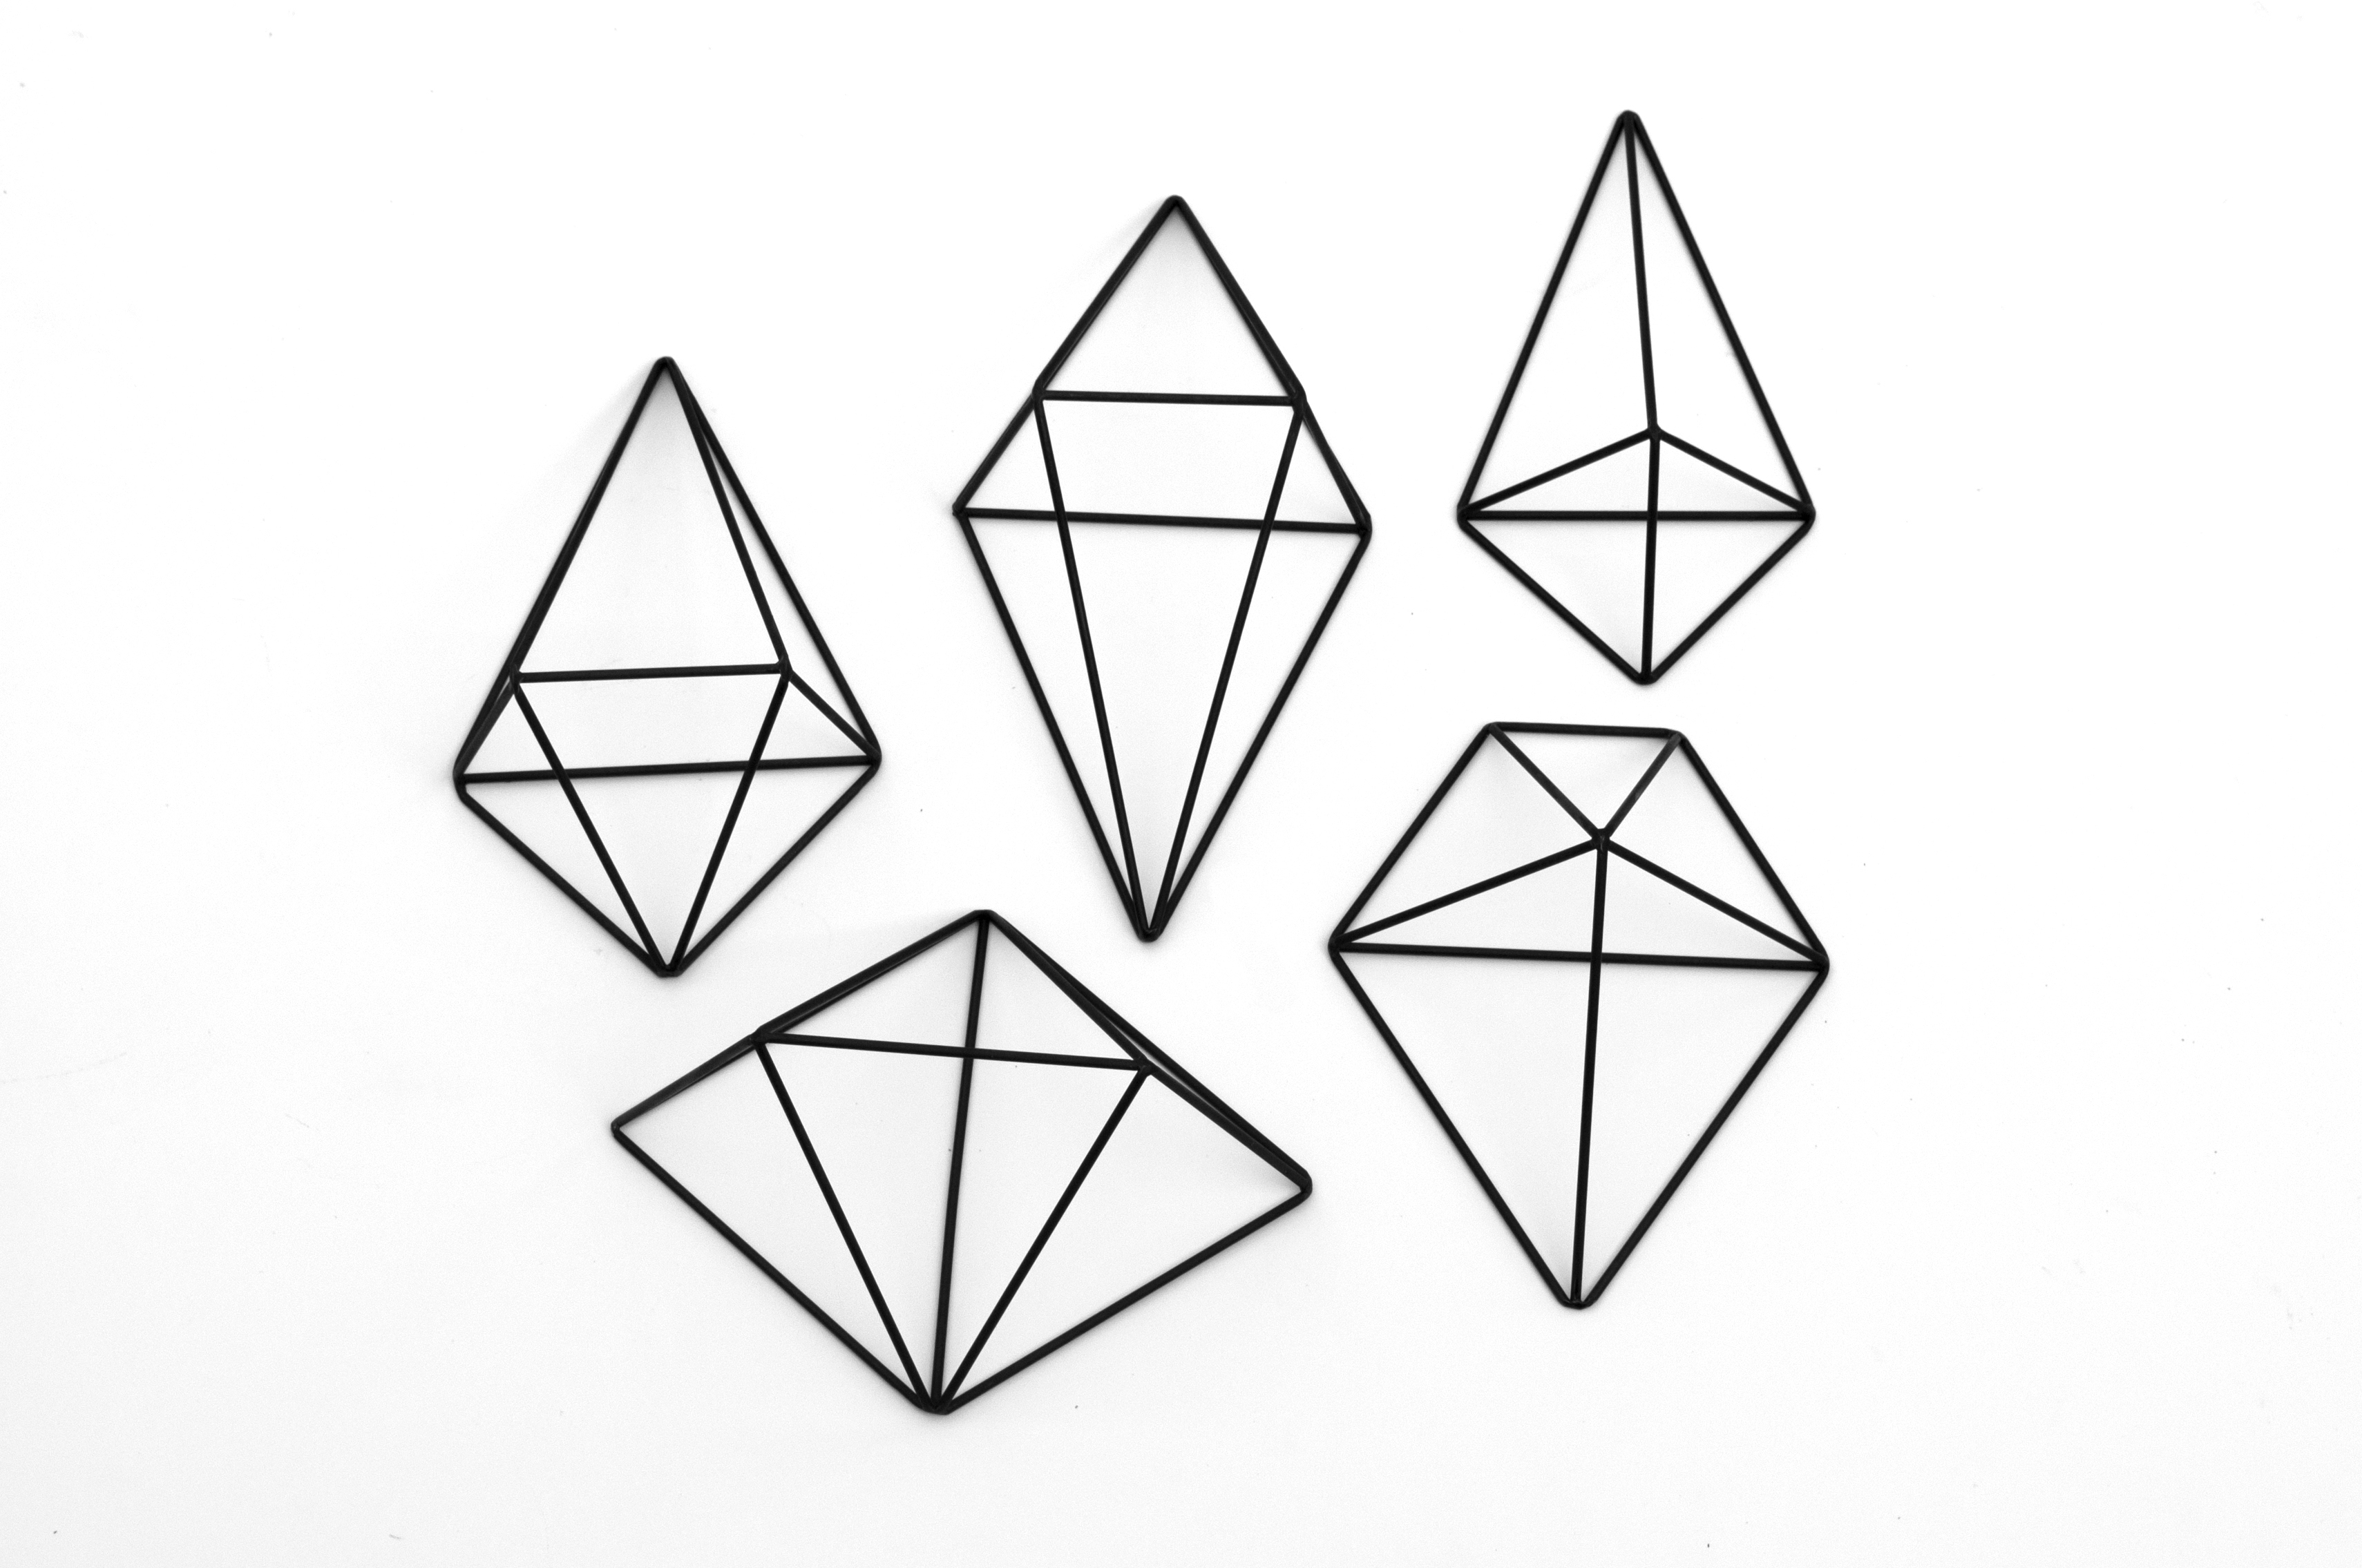 Wall mounted himmeli 5 collection – set of 5 | Elsje ...